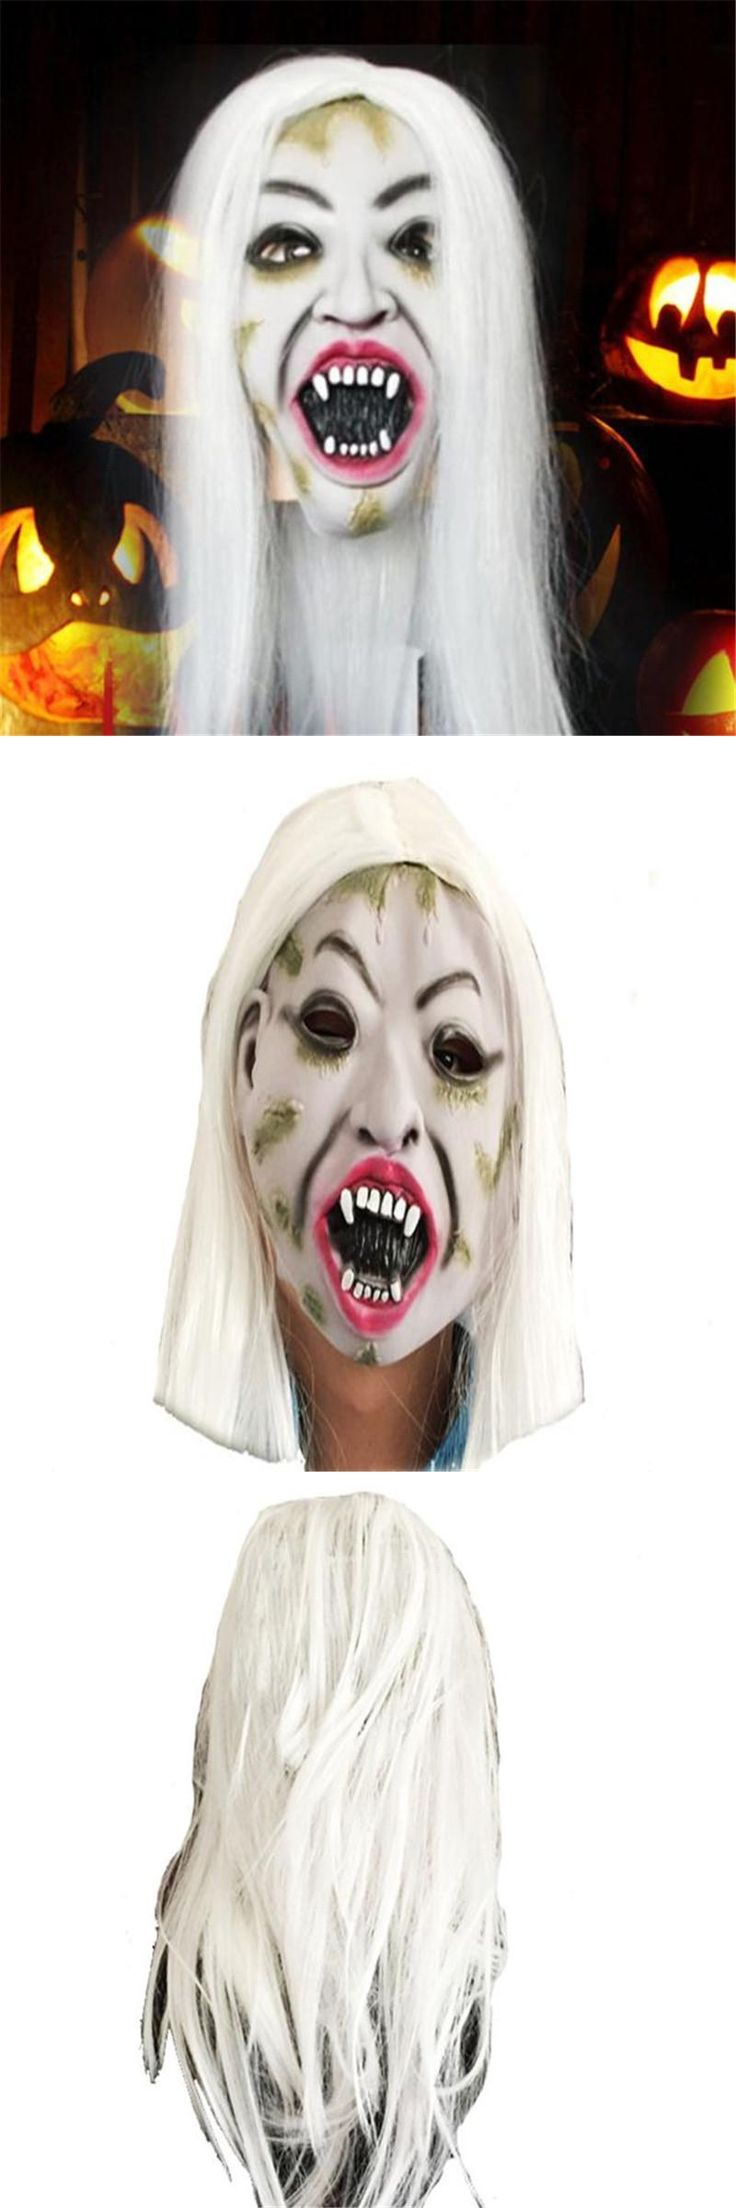 Best 25+ Scary mask ideas on Pinterest | Masks, Creepy masks and ...